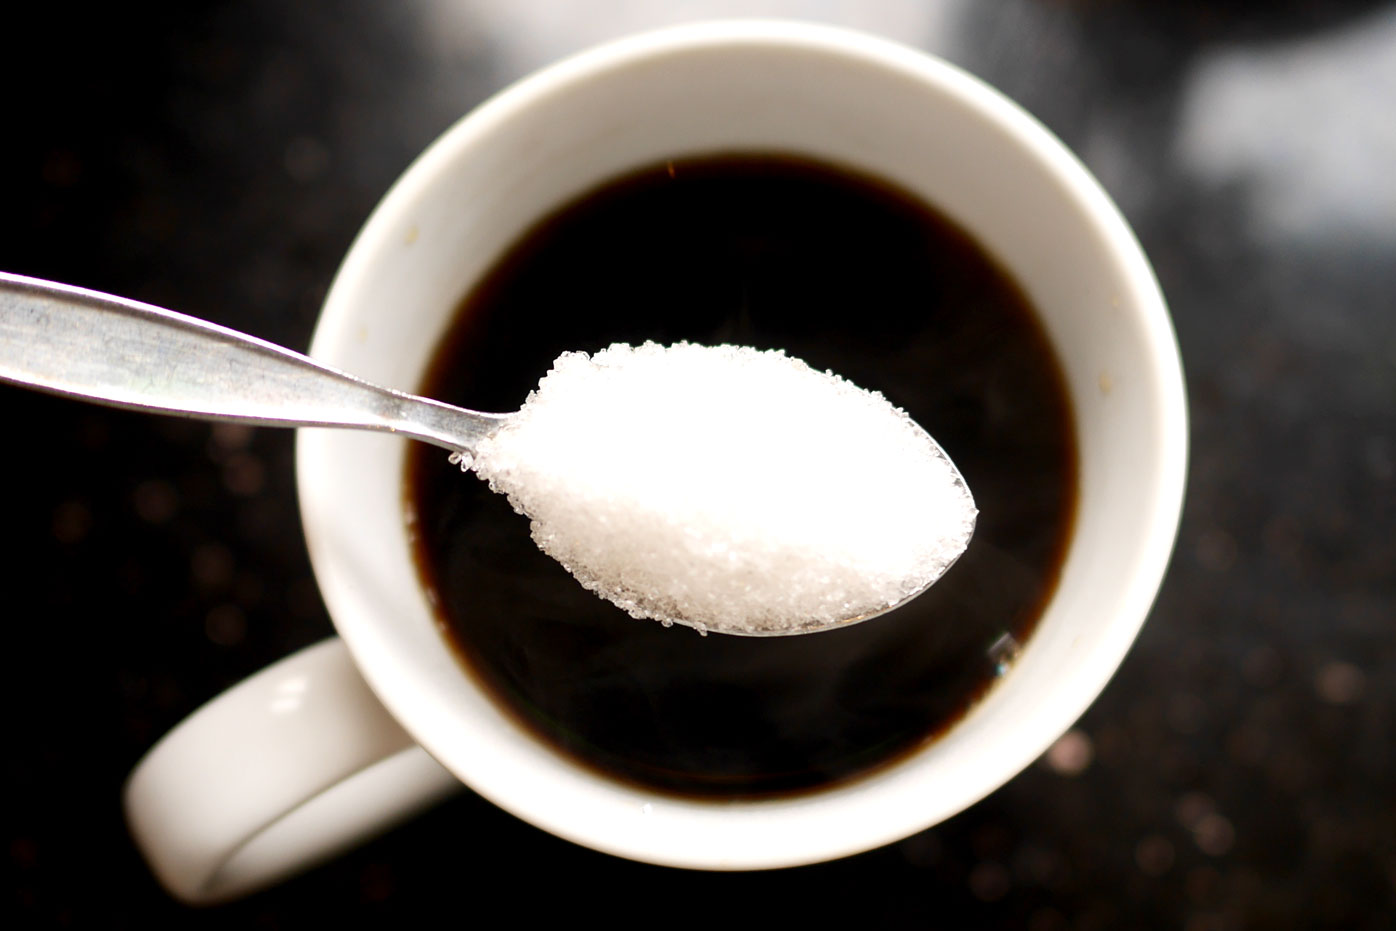 A teaspoon of sugar is about 4g